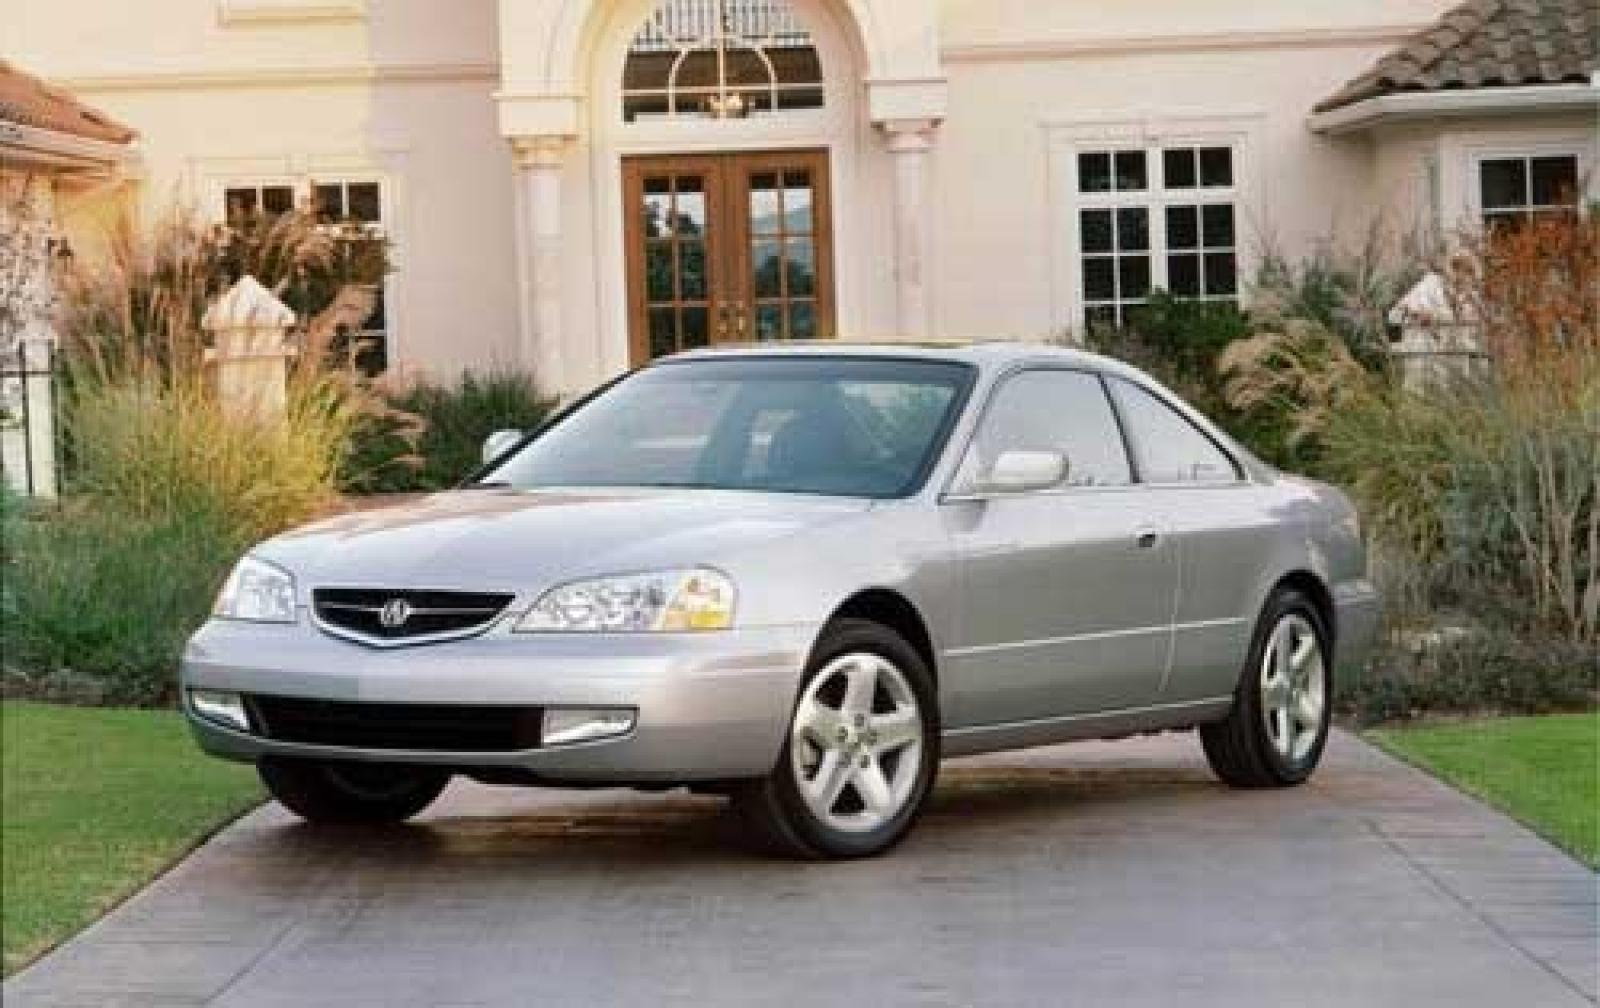 hight resolution of 800 1024 1280 1600 origin 2002 acura cl